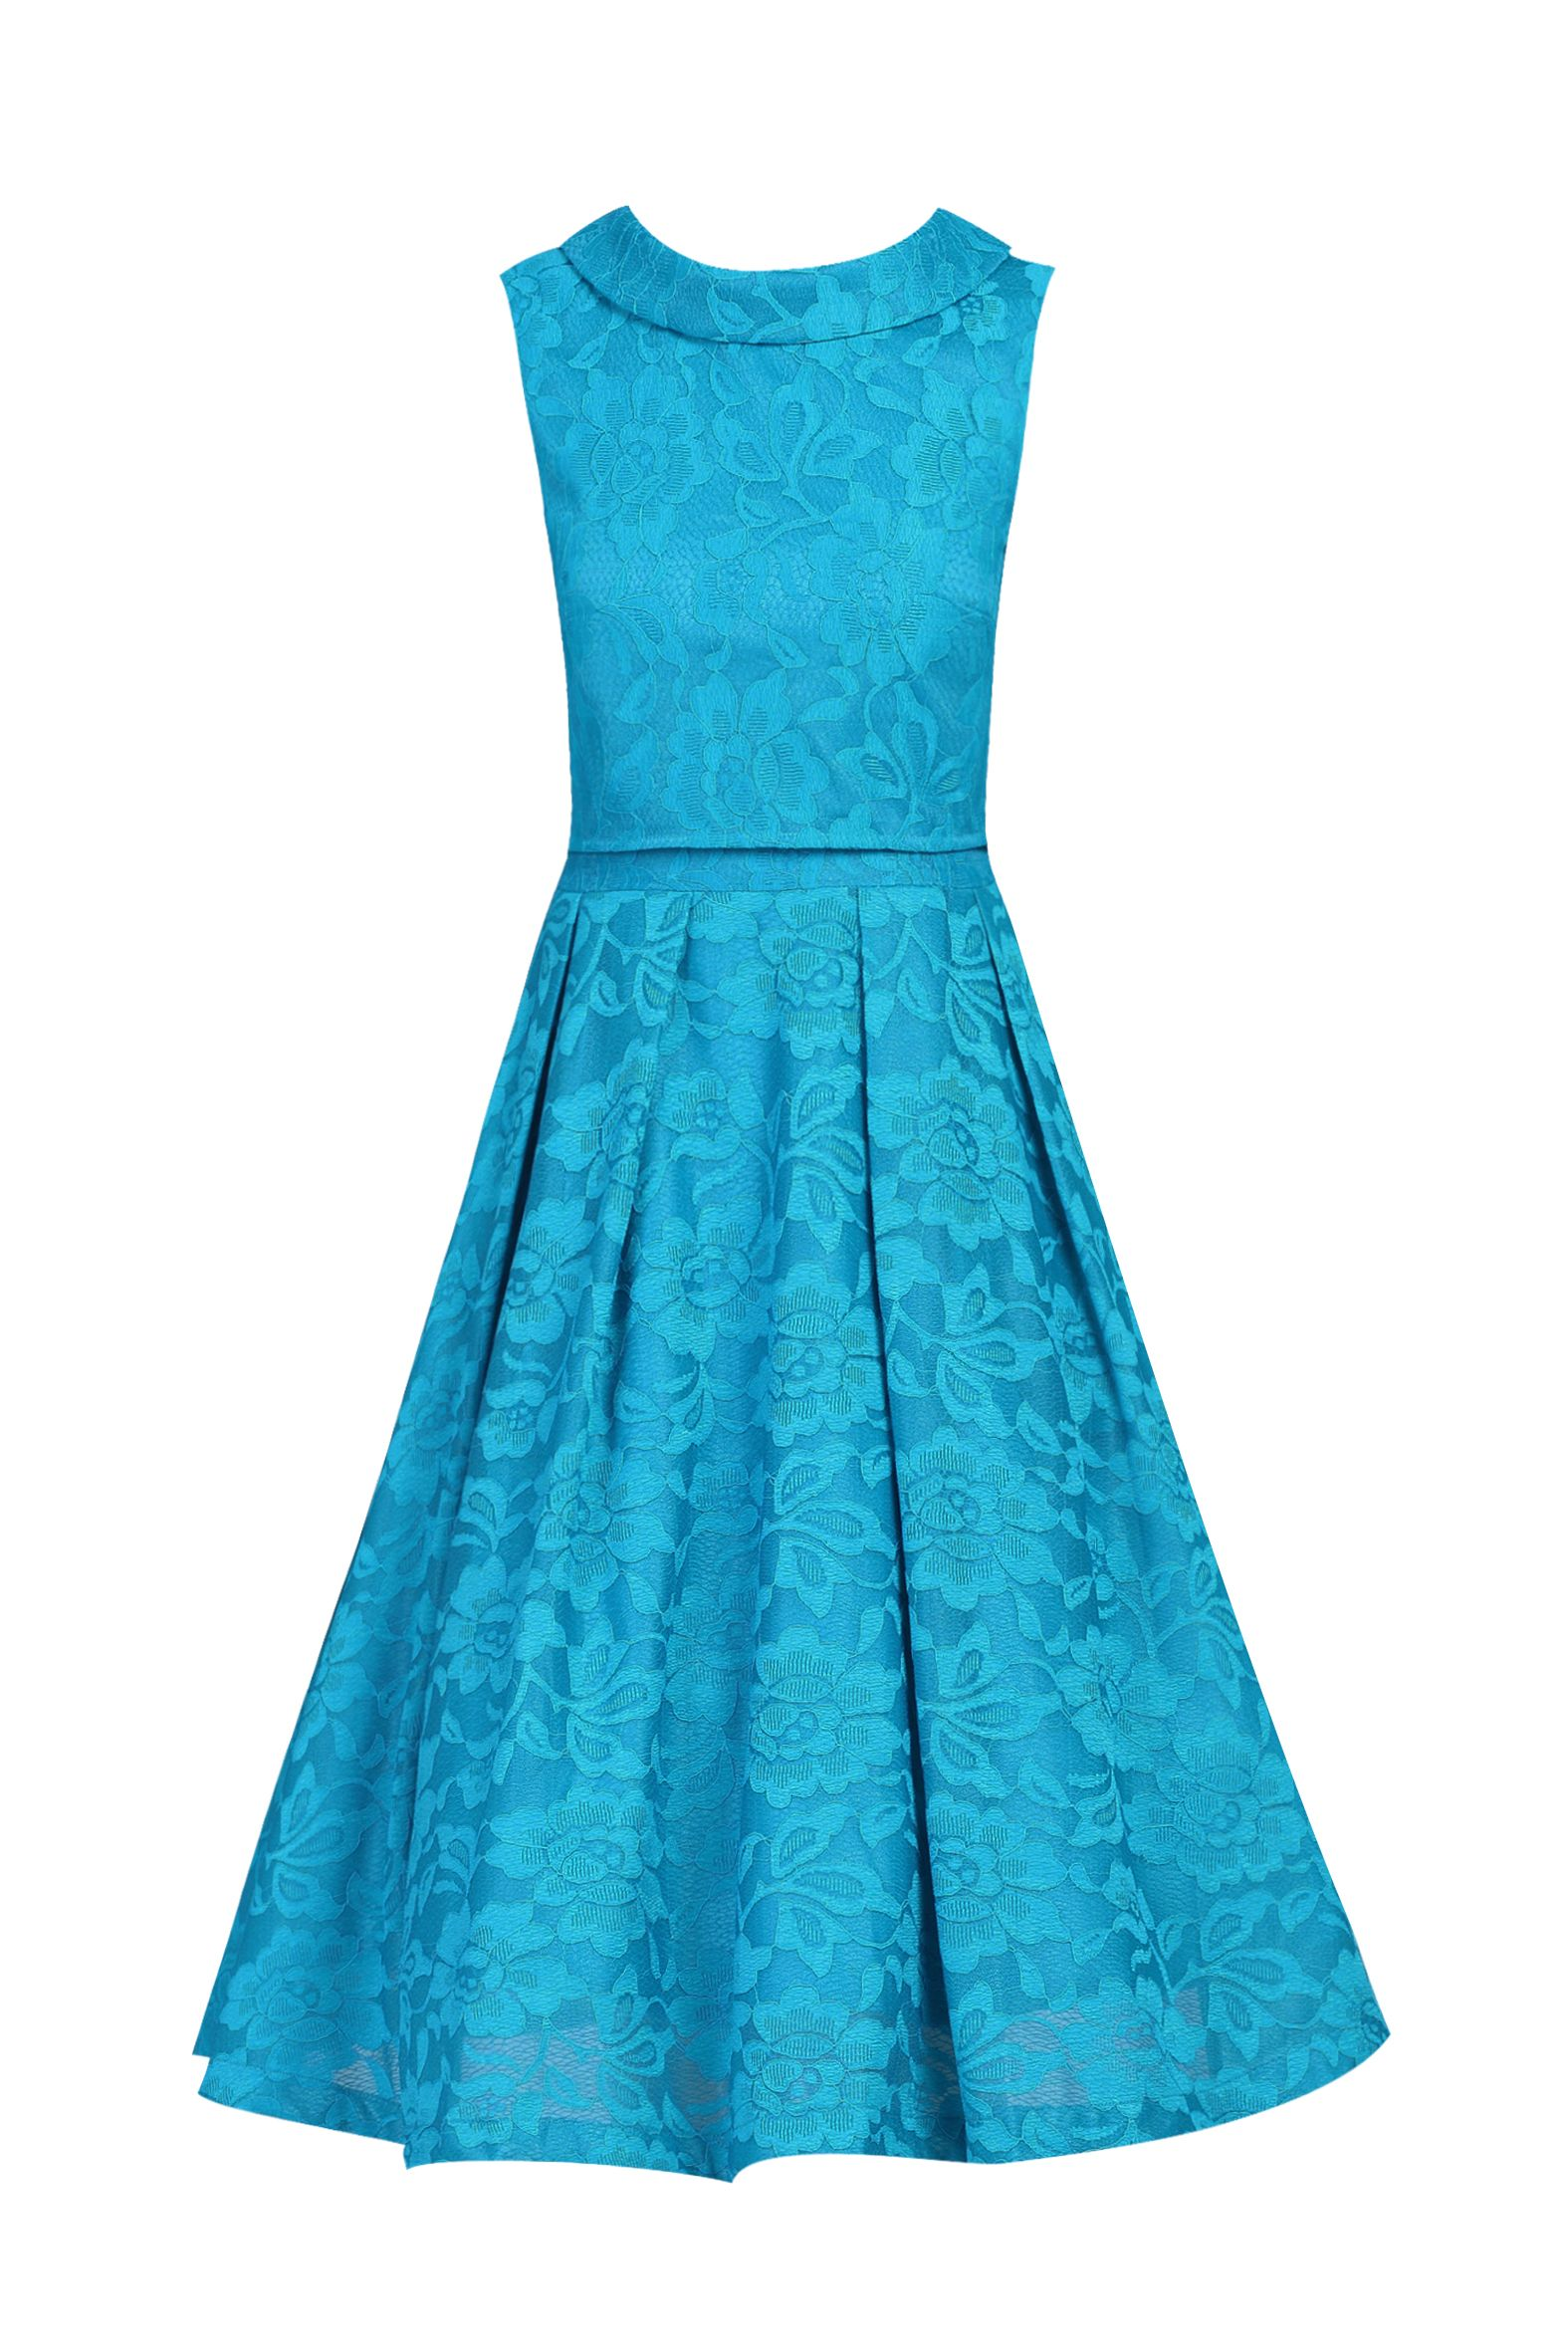 Jolie Moi Lace Bonded Overlay 2 in 1 Dress, Teal